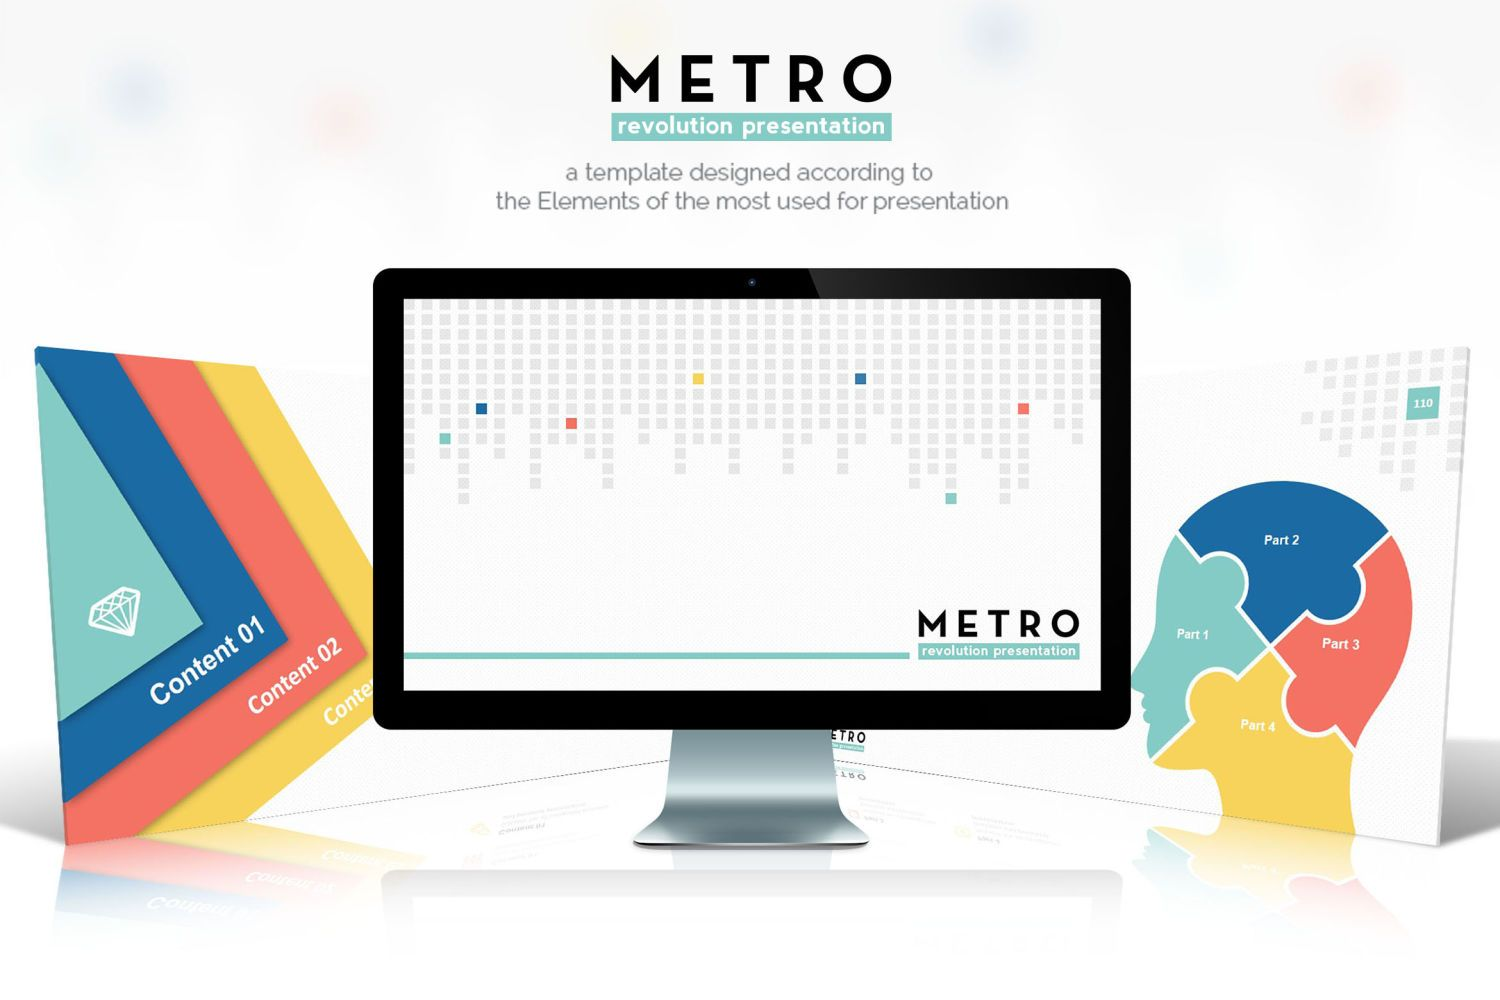 Download metro powerpoint template presentation templates by download metro powerpoint template presentation templates by inspirasign subscribe to envato elements for unlimited presentation toneelgroepblik Image collections